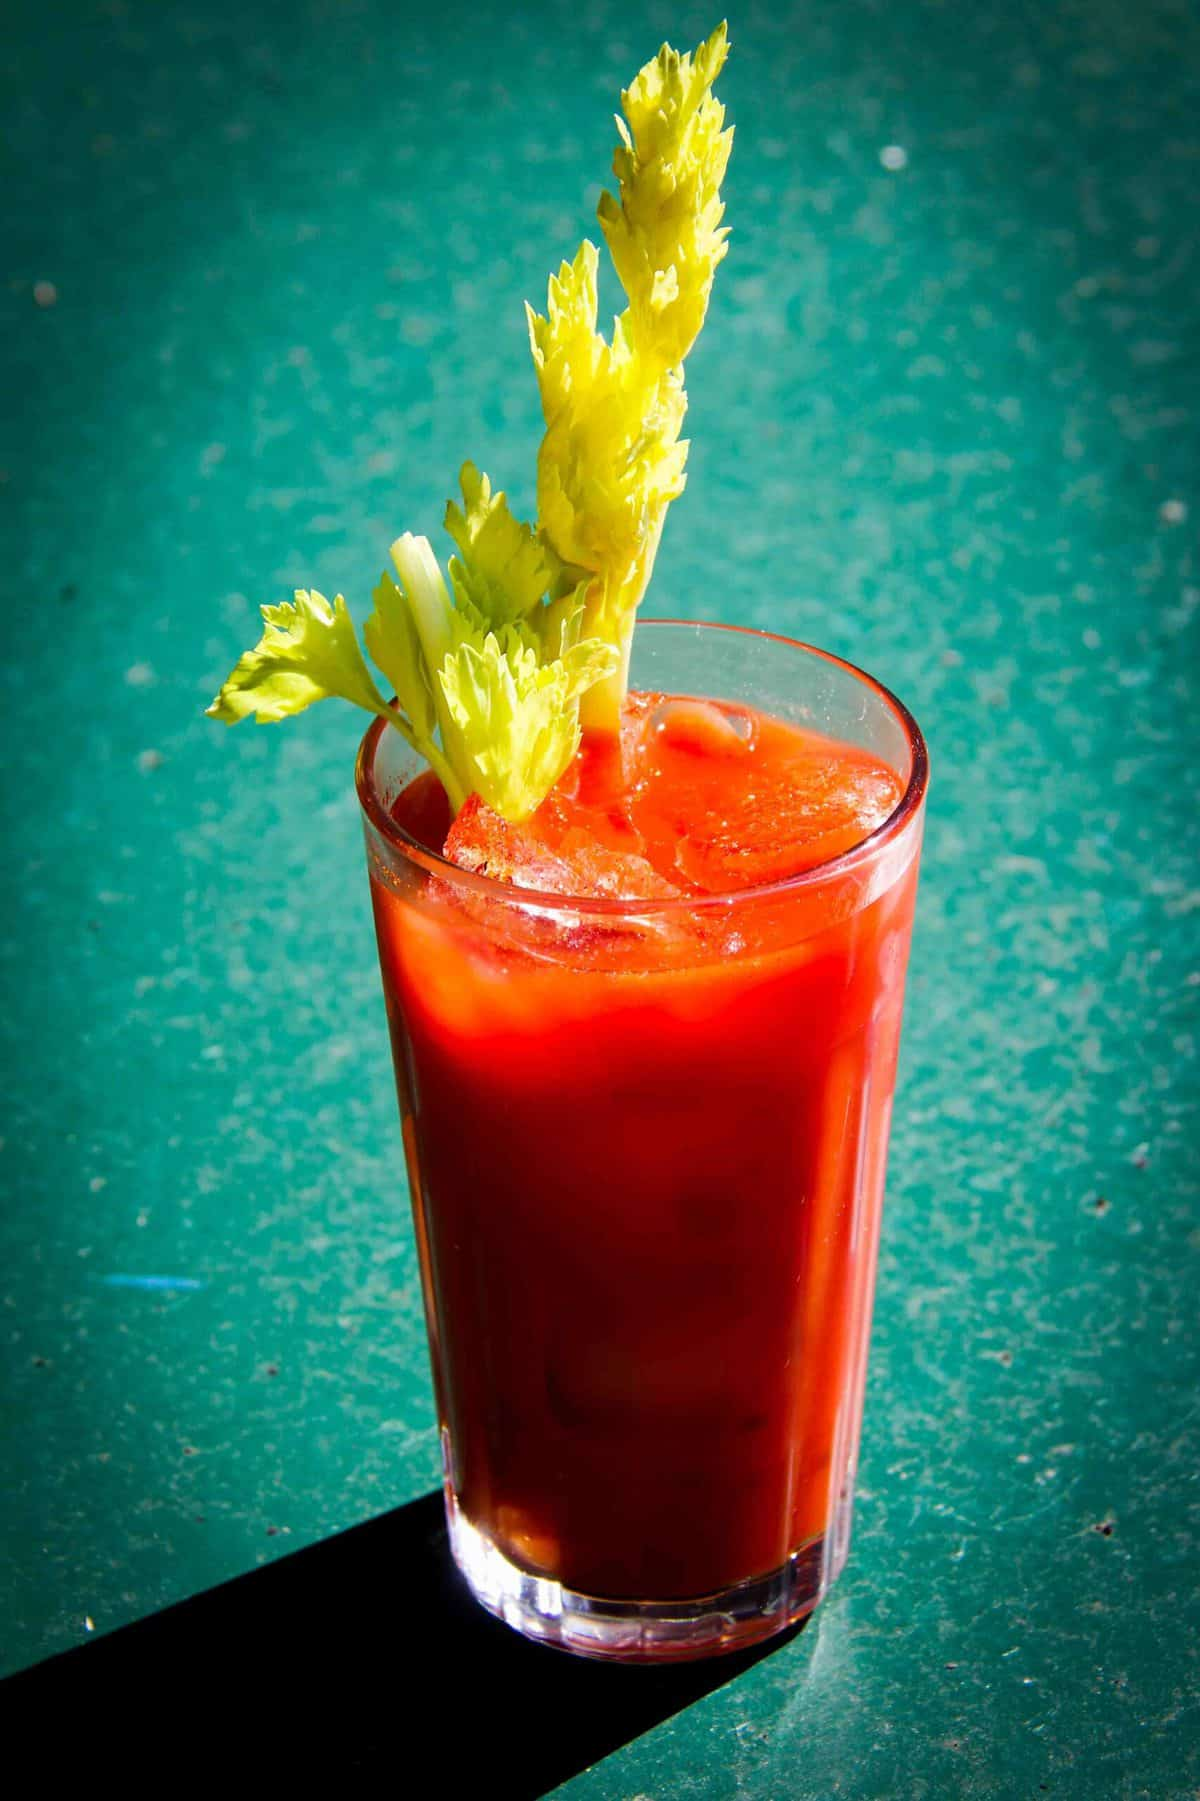 A bloody mary cocktail on a green table.